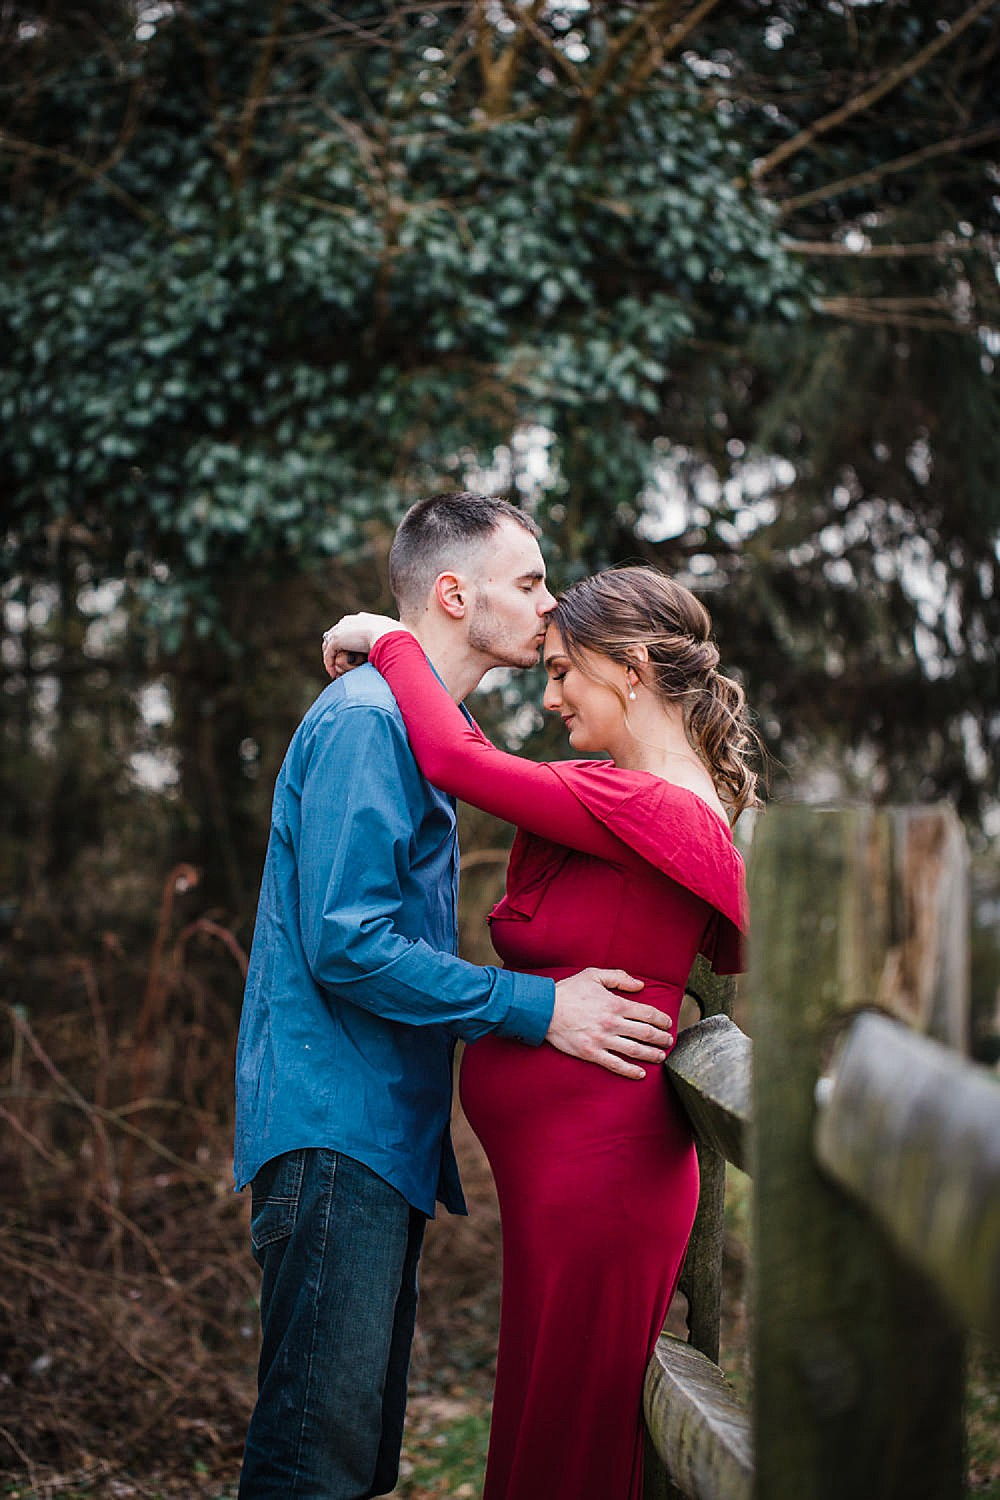 Photo of a pregnant woman in a red dress with her arms wrapped around her husband.